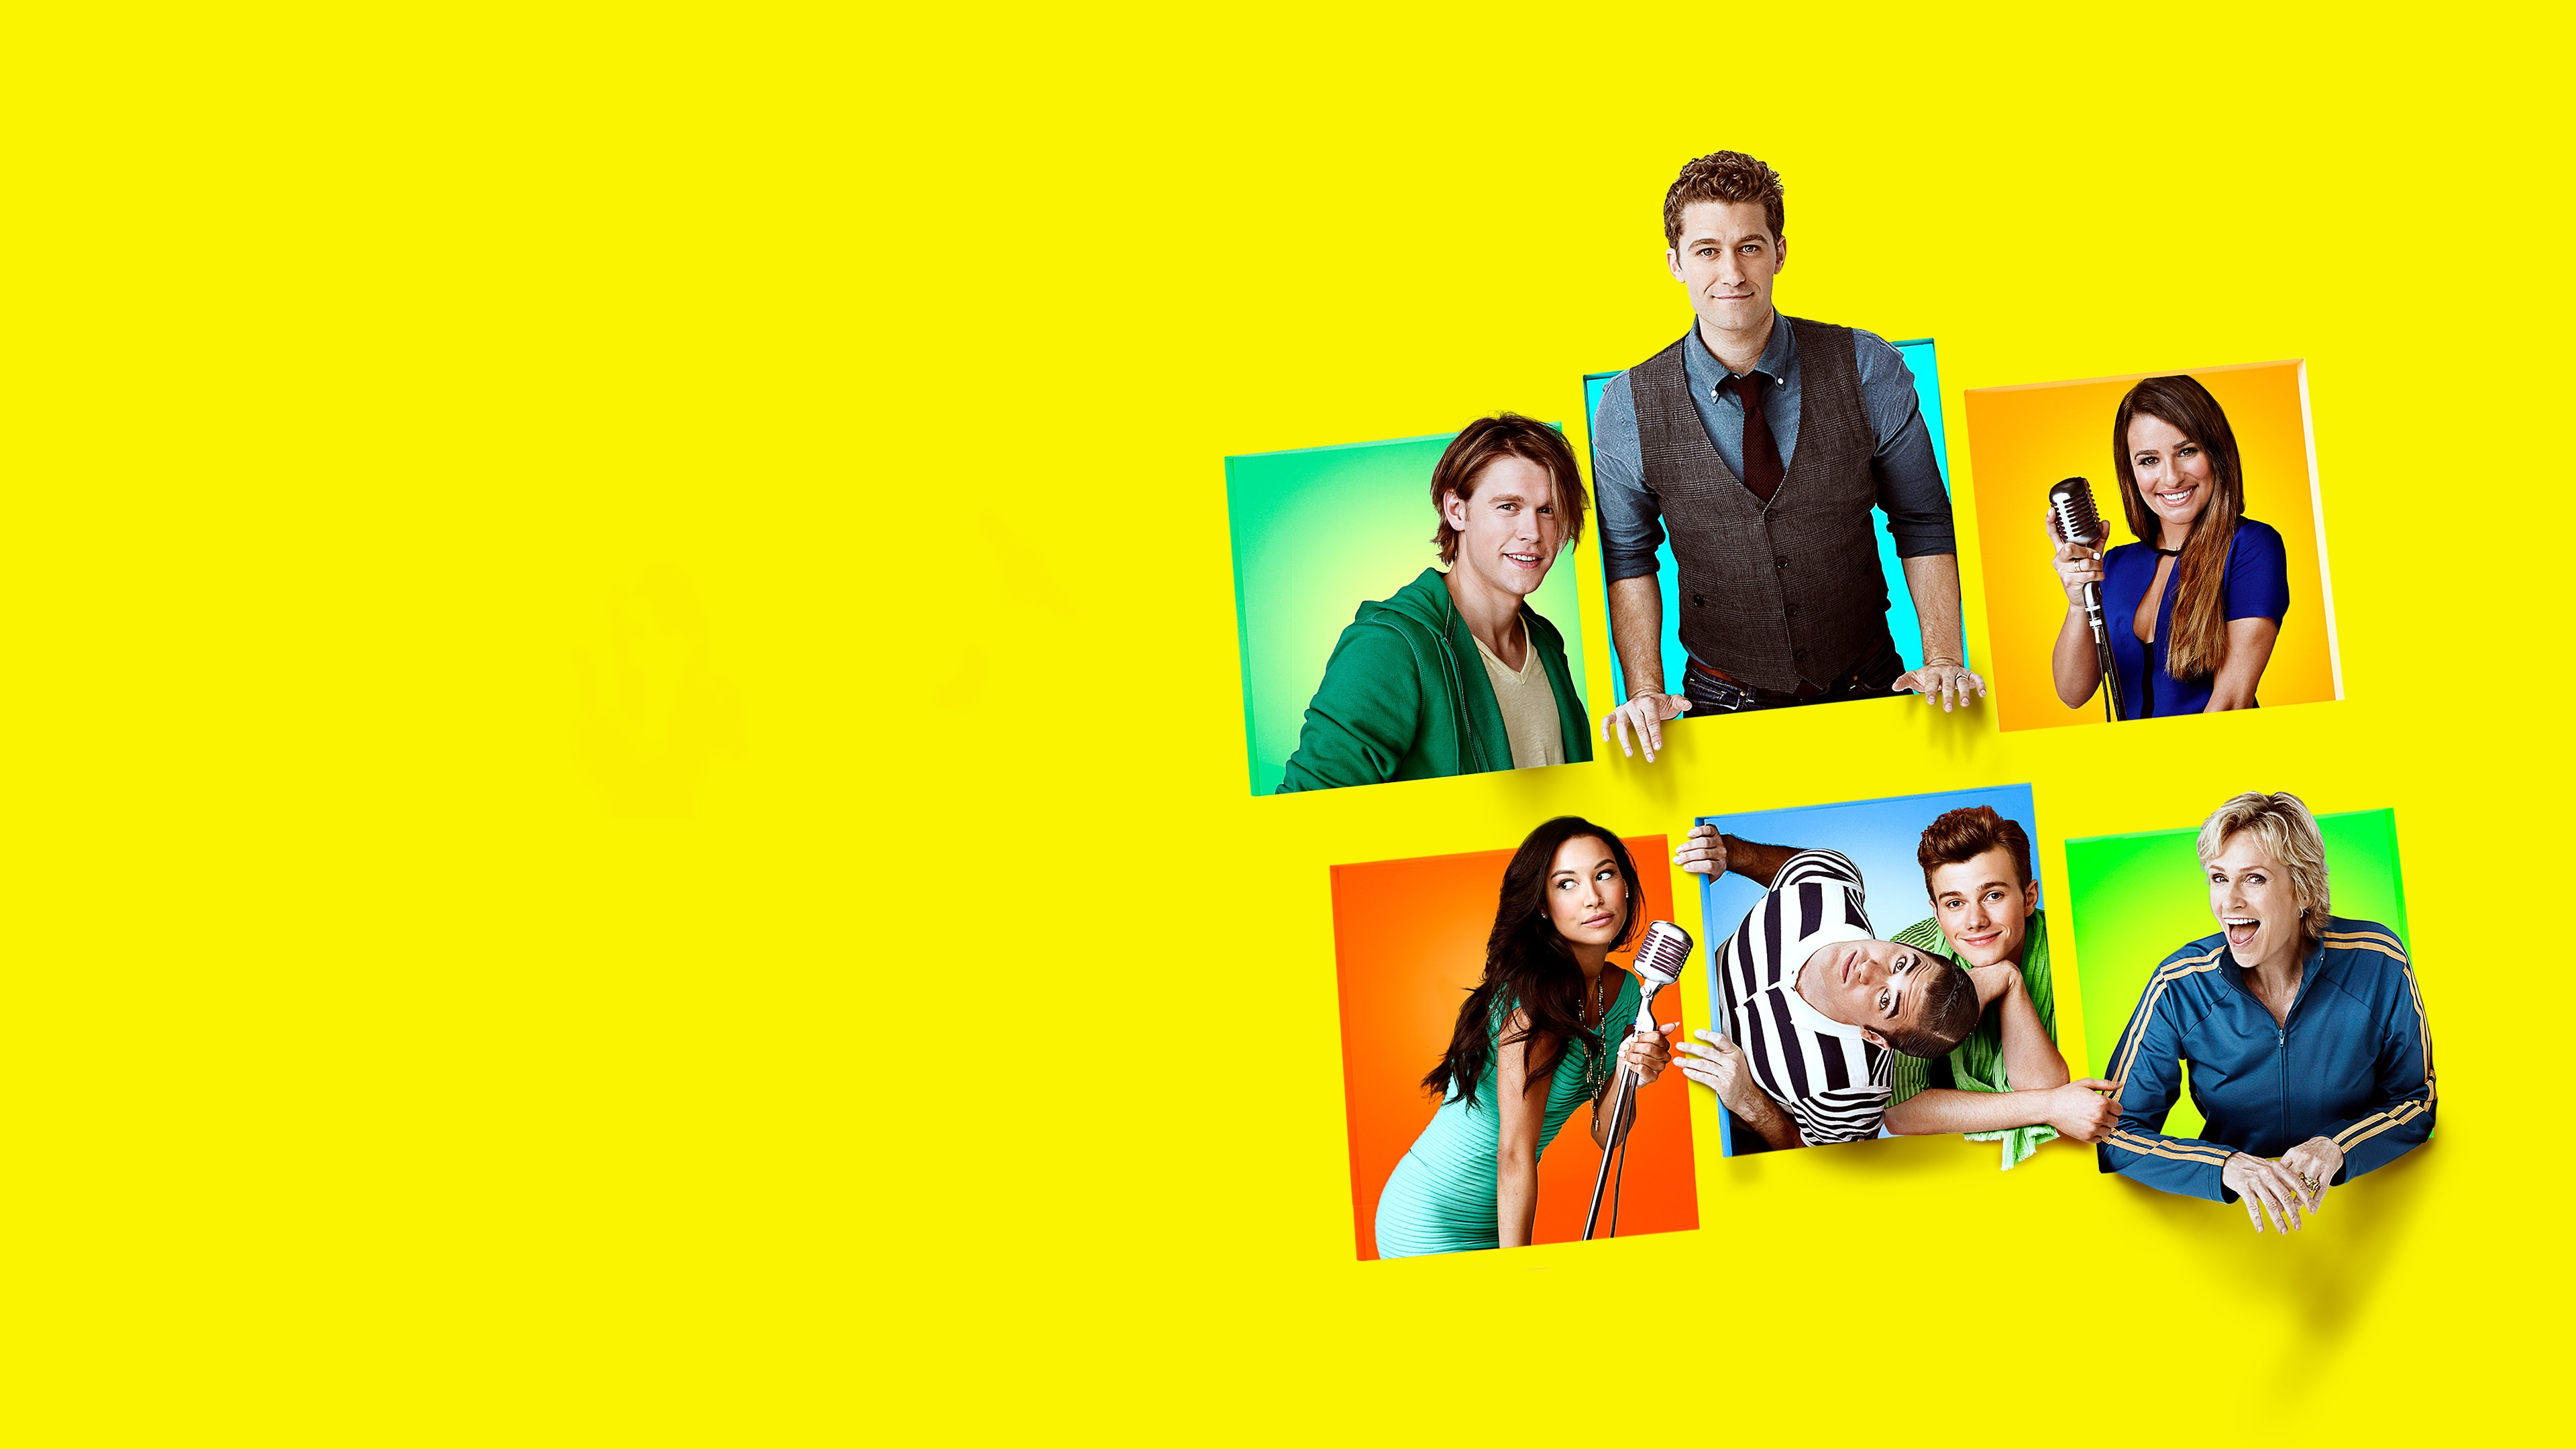 Who is artie dating on glee